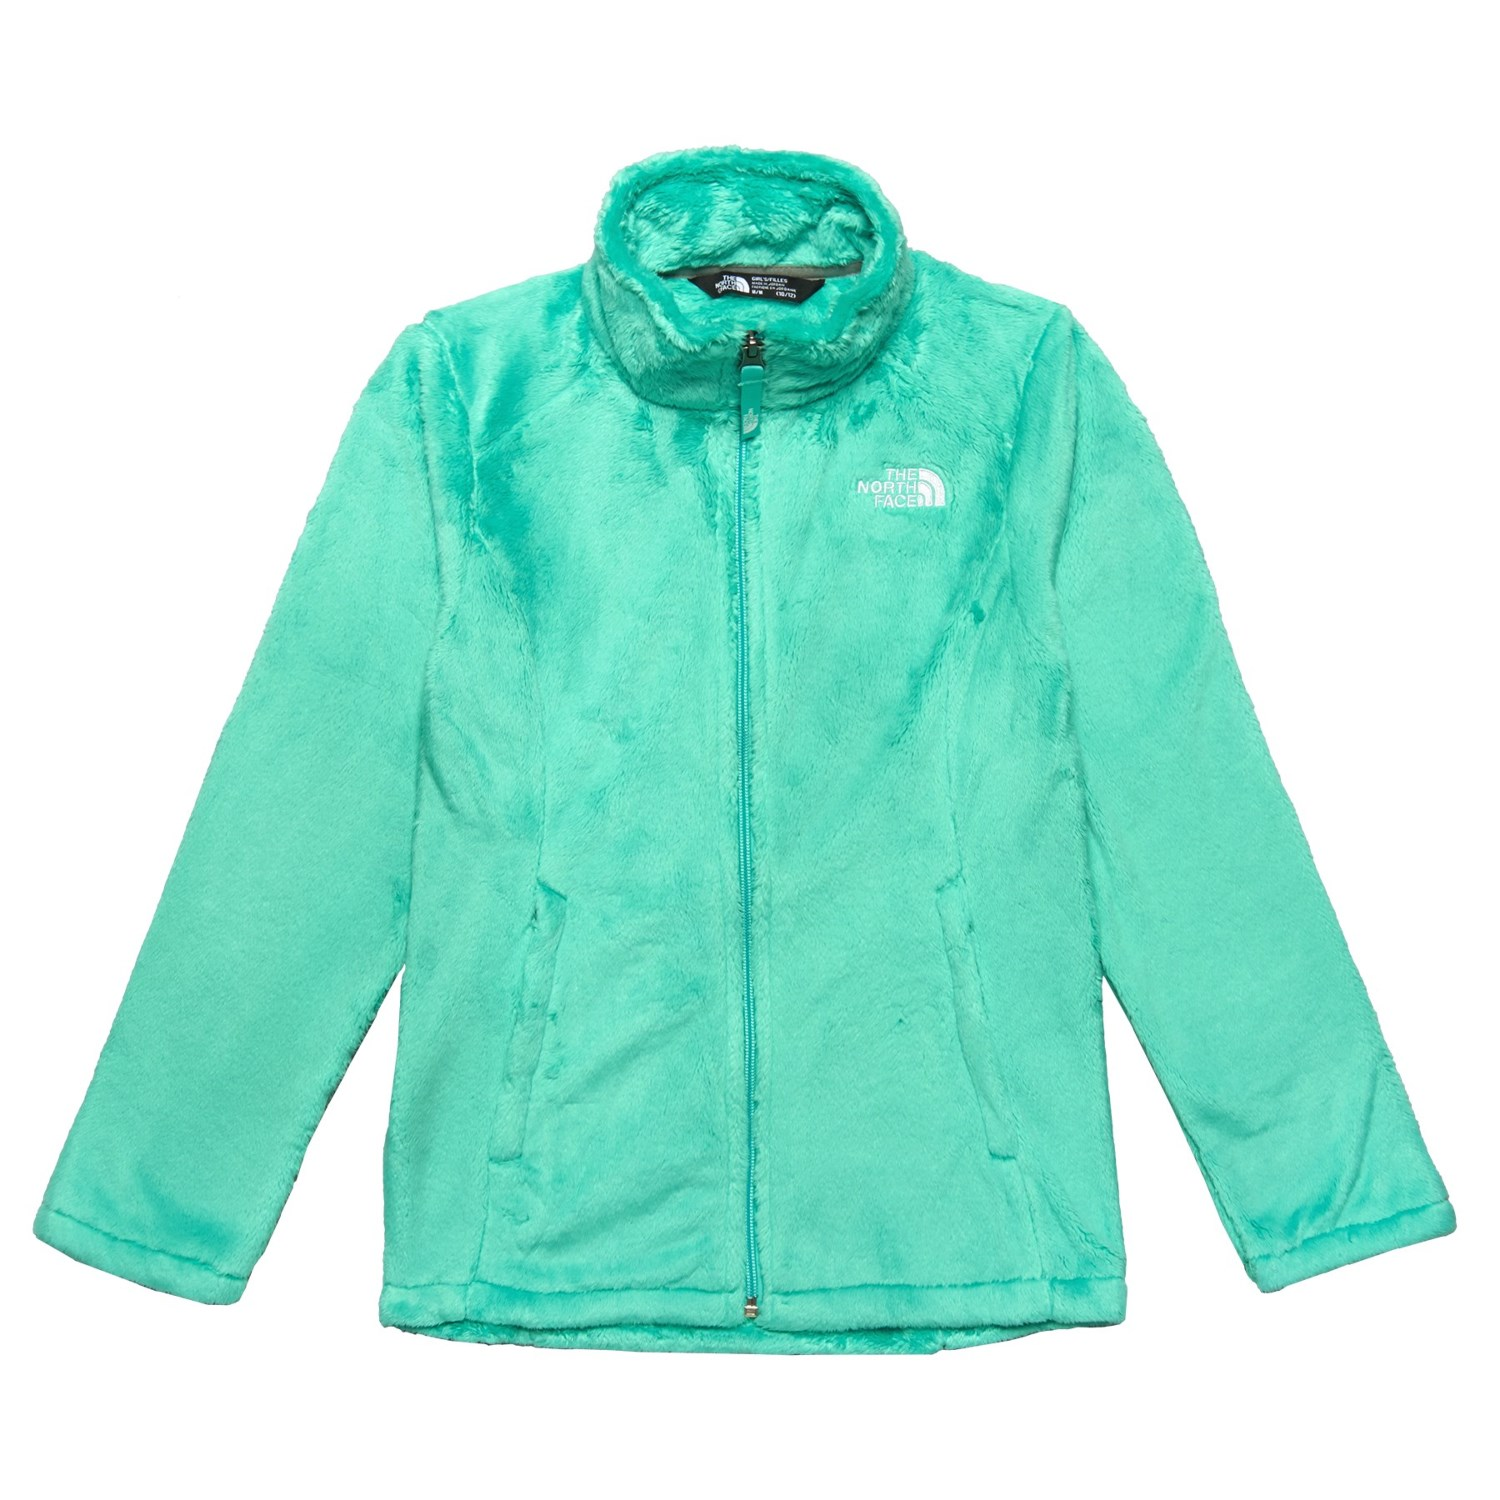 dcd38129a The North Face Osolita Fleece Jacket (For Big Girls)